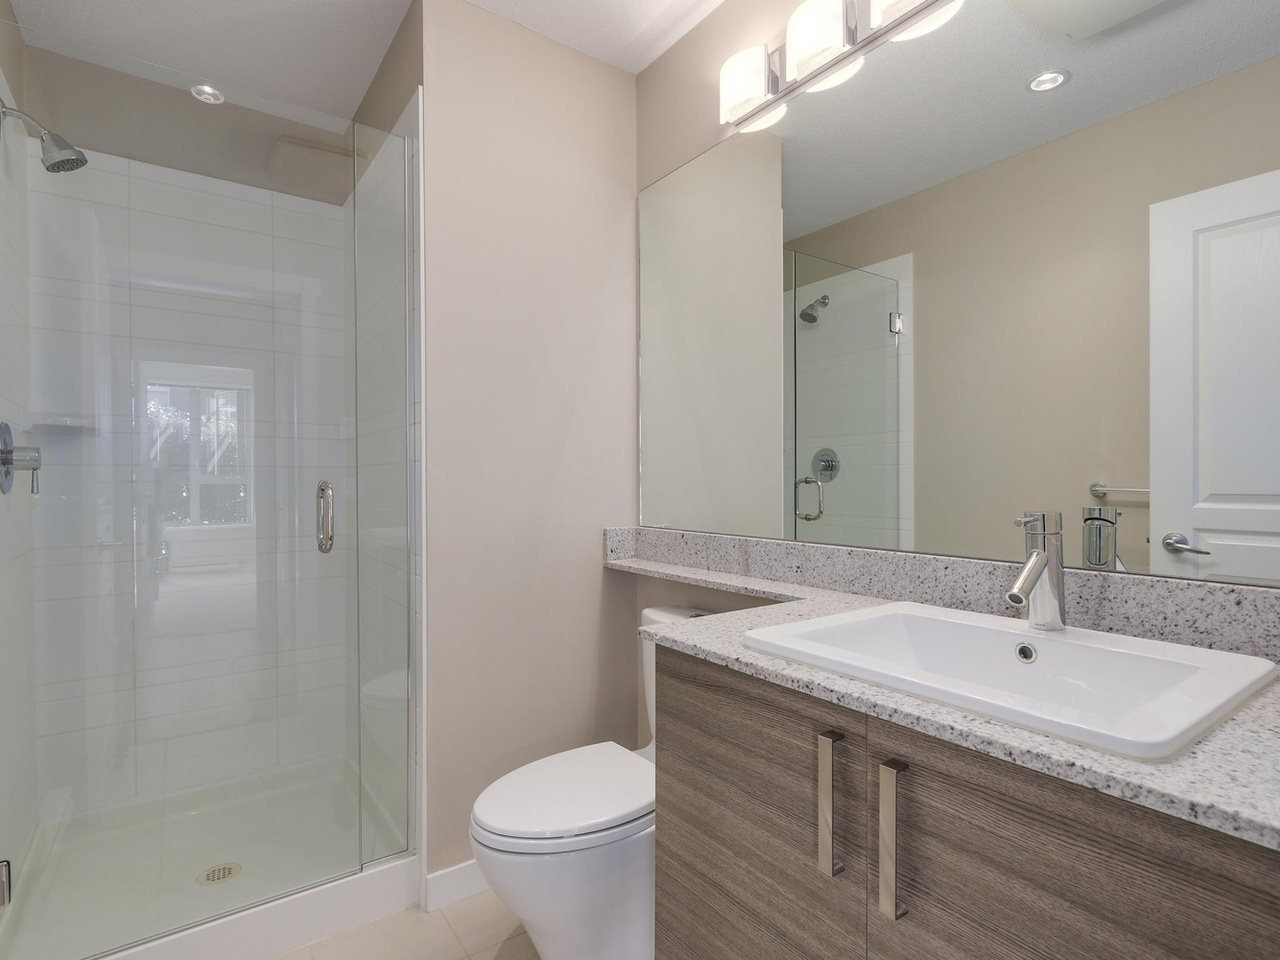 """Photo 10: Photos: 108 1150 KENSAL Place in Coquitlam: New Horizons Condo for sale in """"Windsor Gate"""" : MLS®# R2102595"""